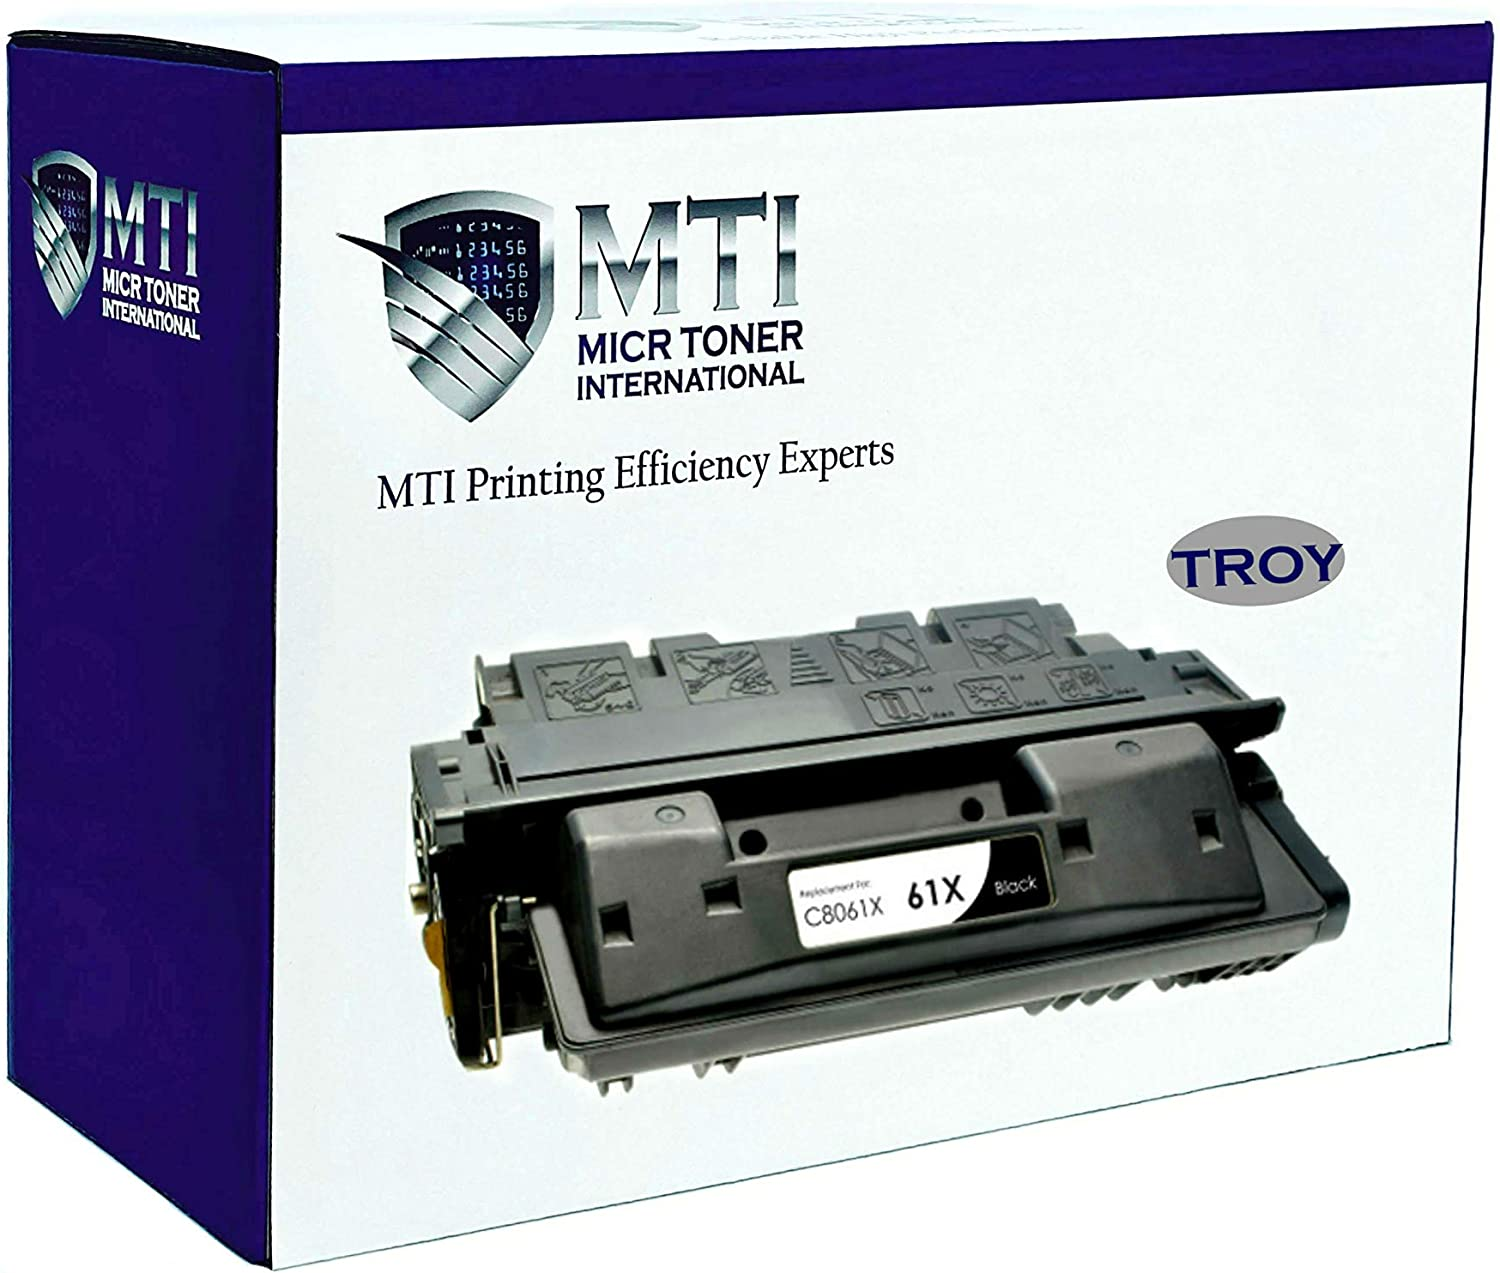 MICR Toner International Compatible Magnetic Ink Cartridge Replacement for Troy 02-81078-001 HP C8061X 61X LaserJet 4100